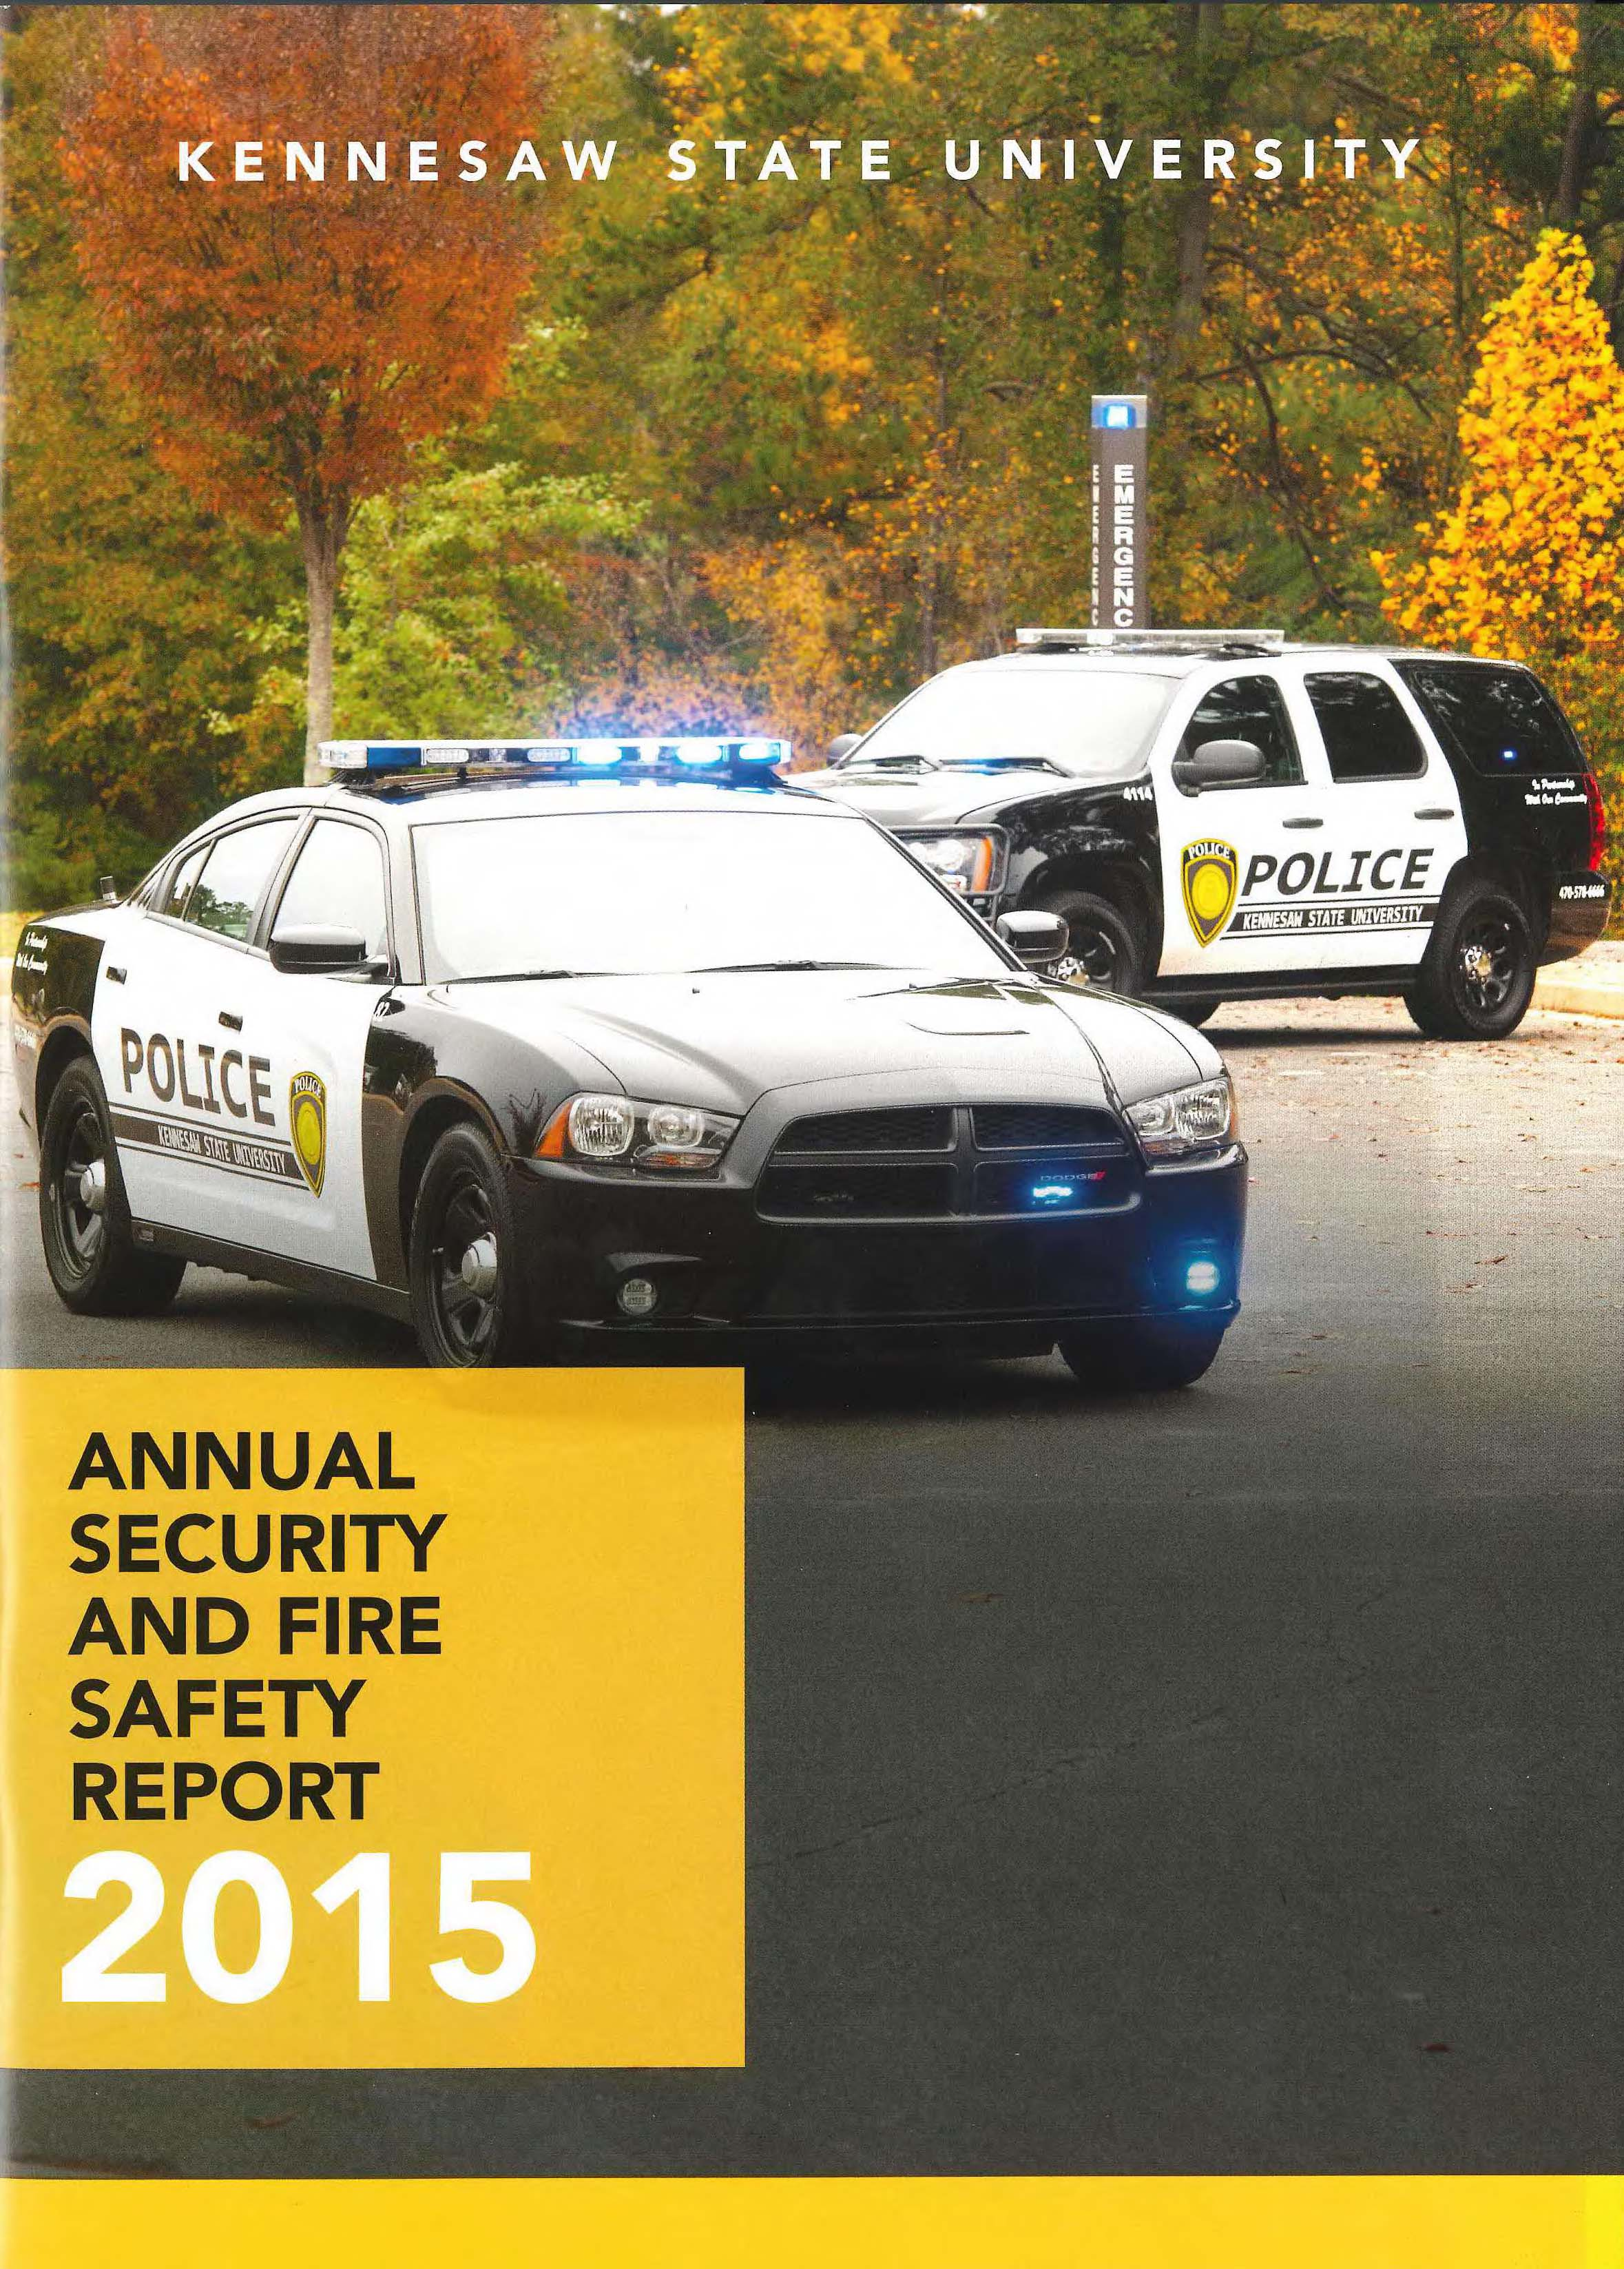 Annual Security and Fire Safety Report